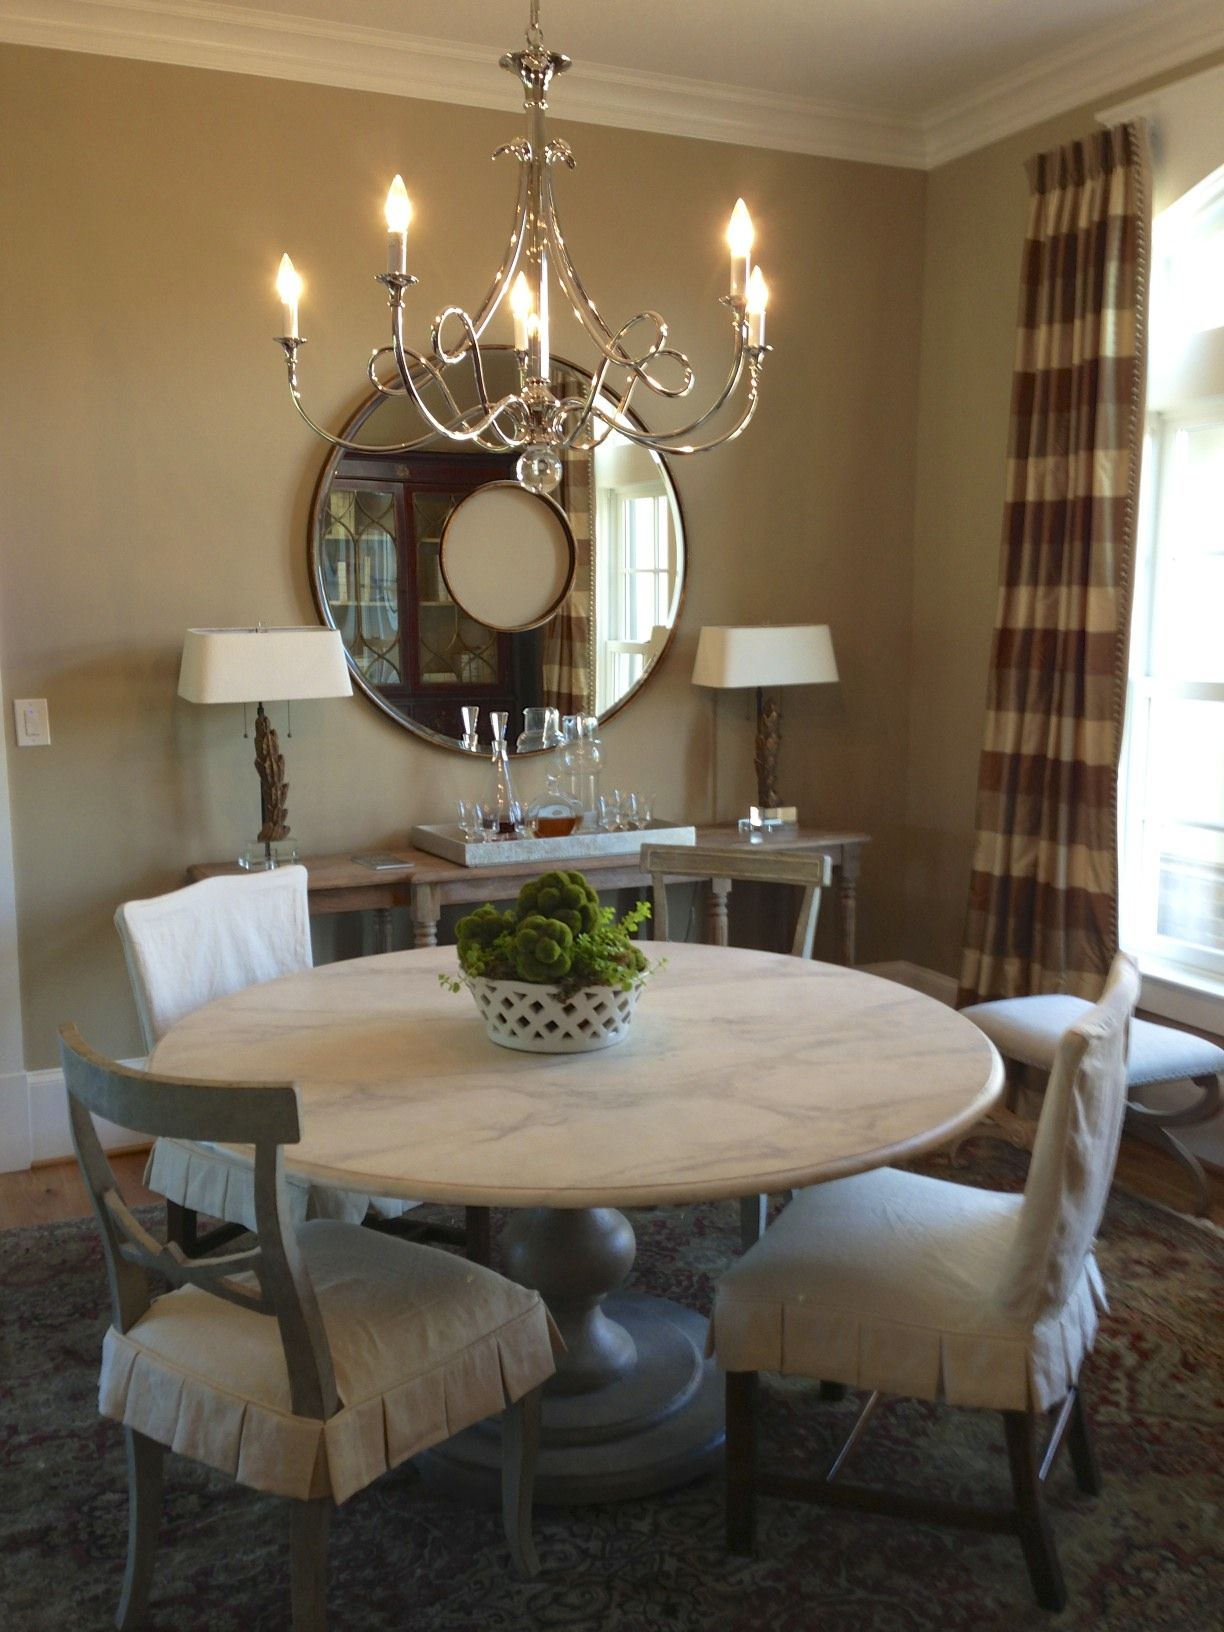 Image Result For Southern Living Collection Round Dining Table